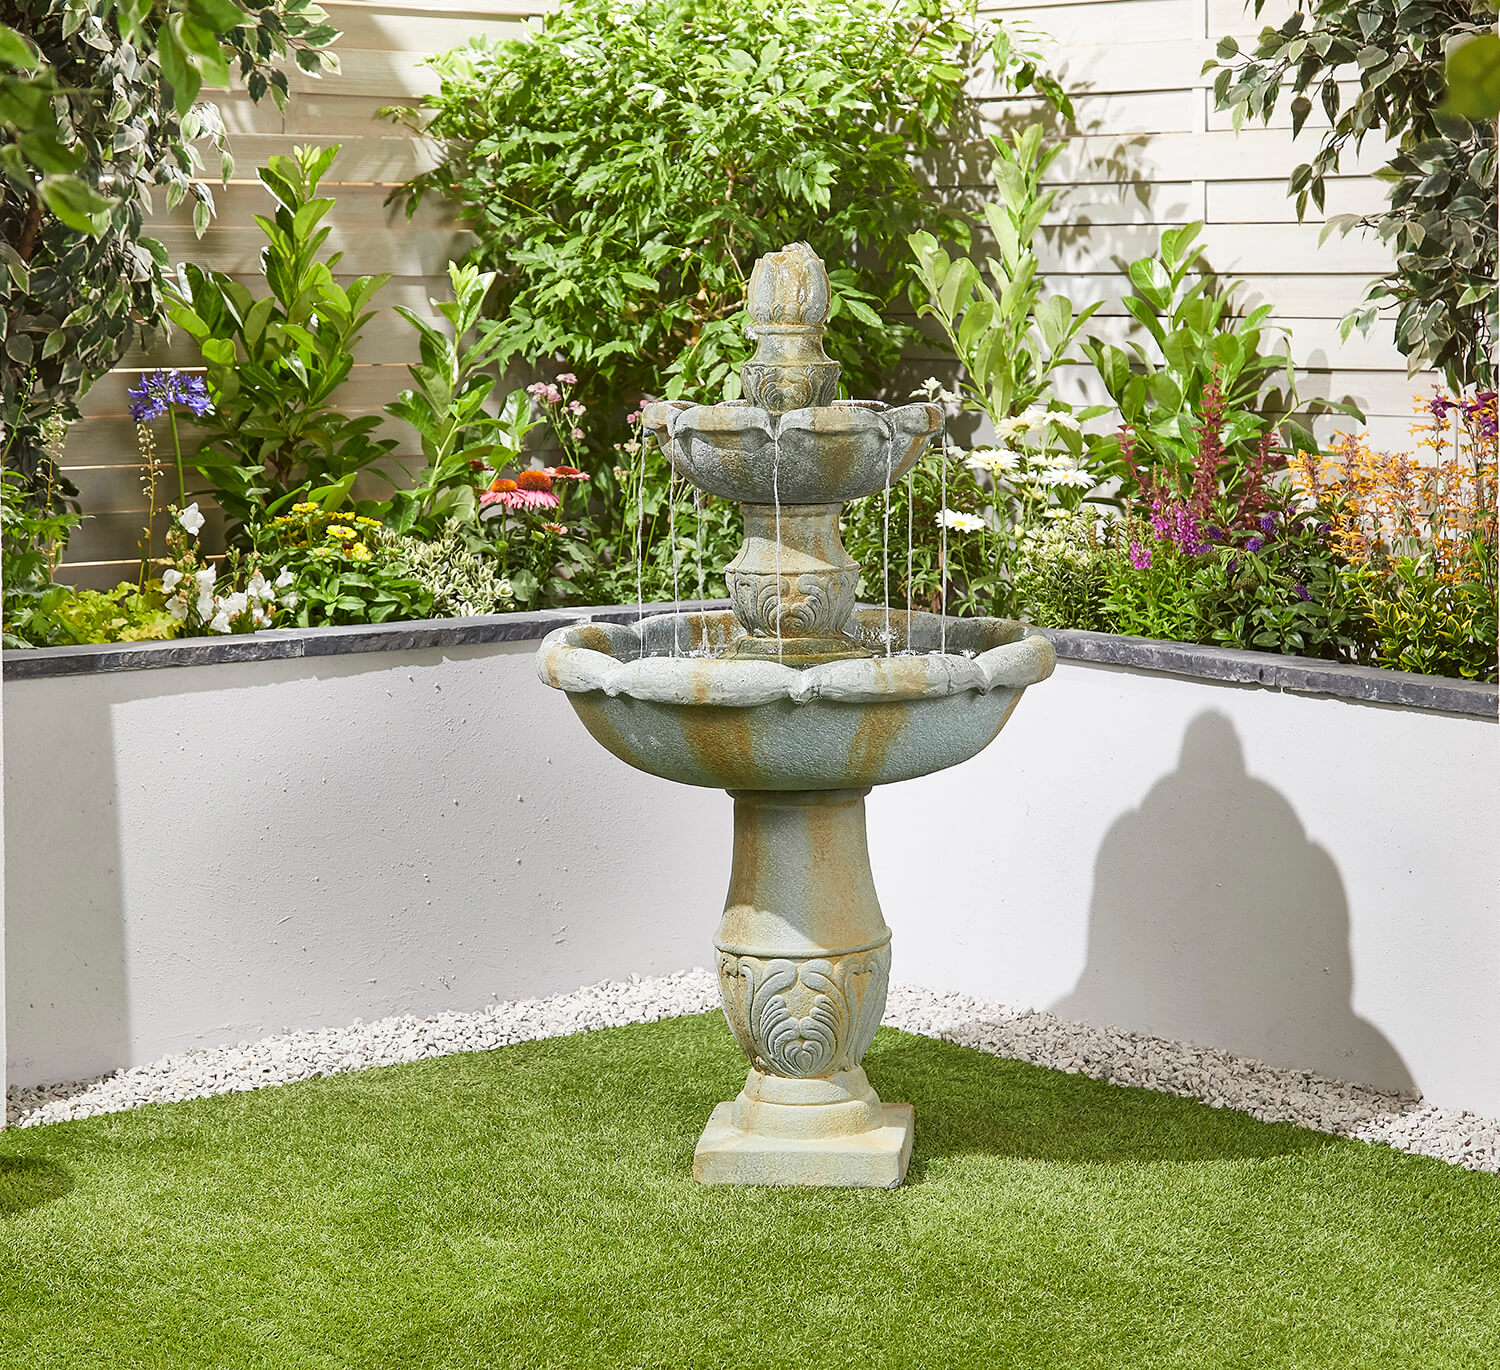 Simple Water Features For The Garden: Classical Springs Easy Fountain Garden Water Feature